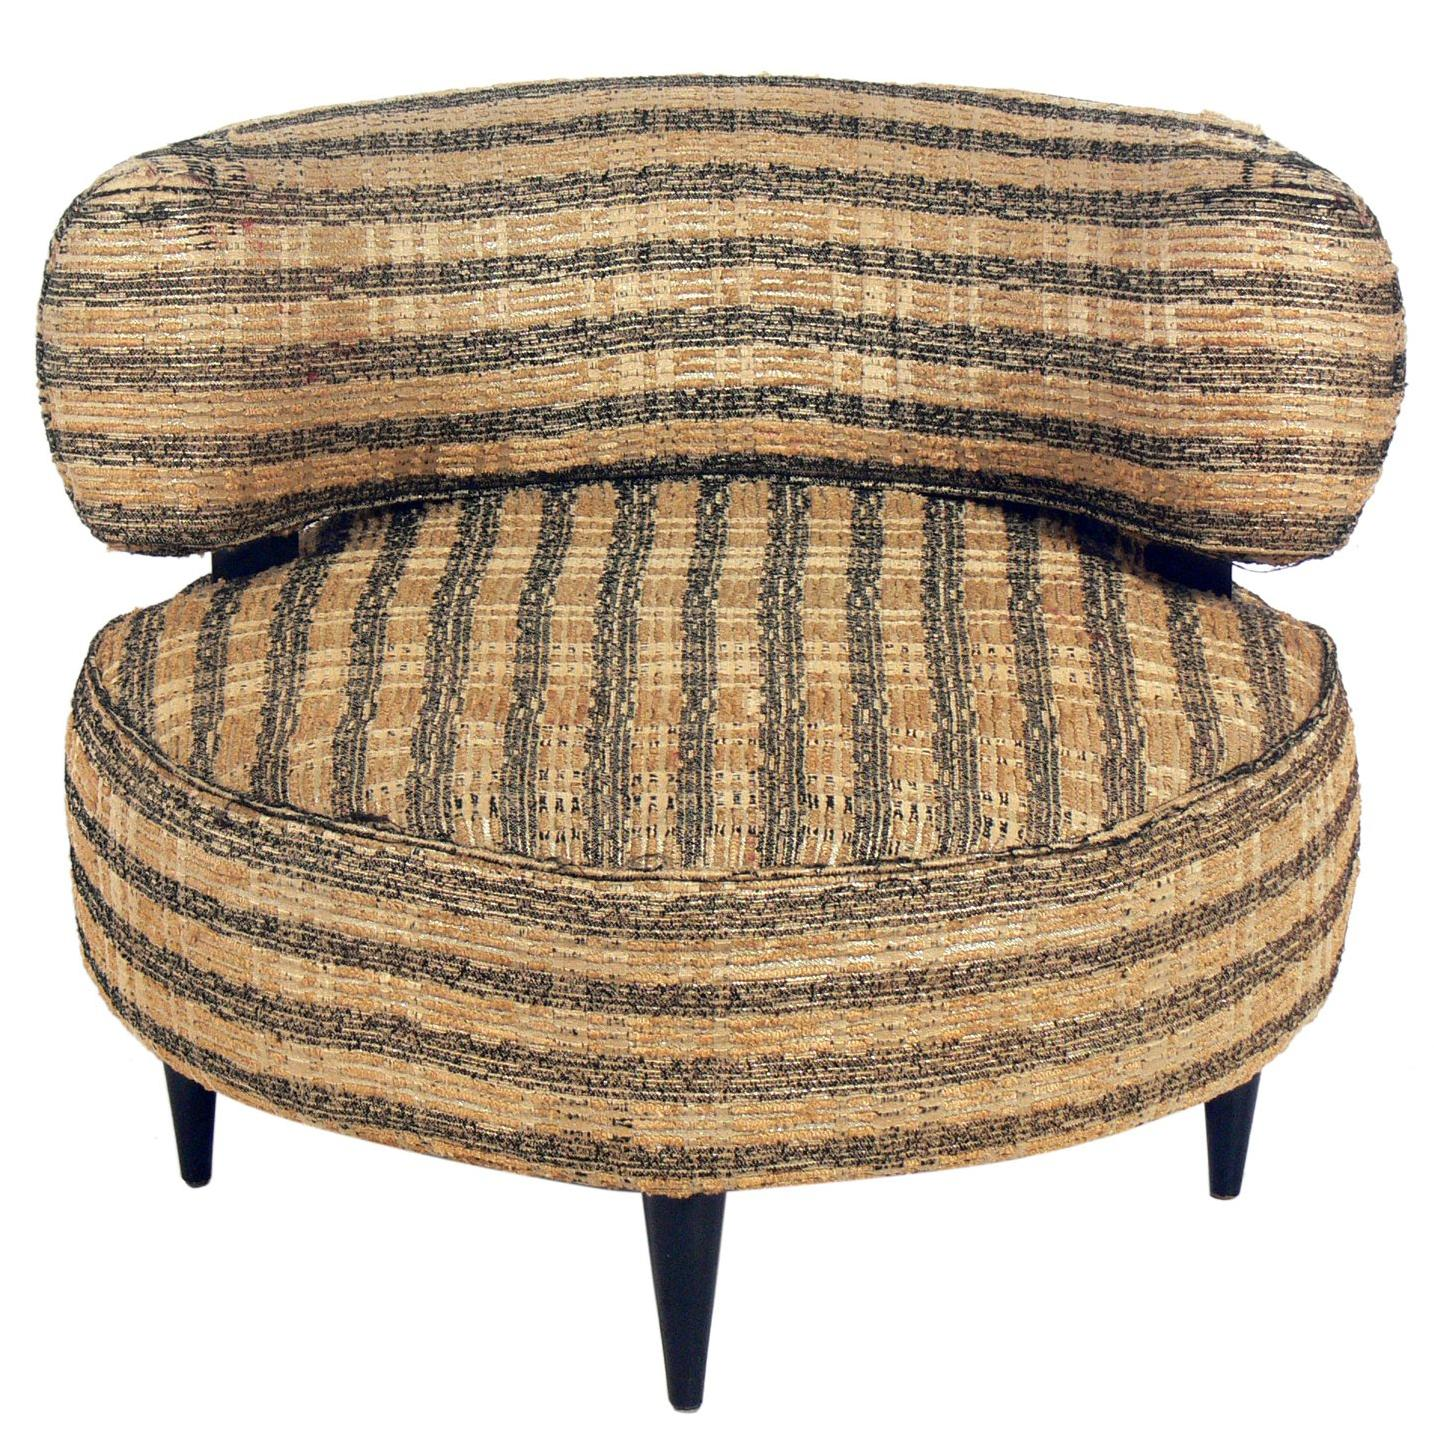 Curvaceous 1940s Lounge Chair